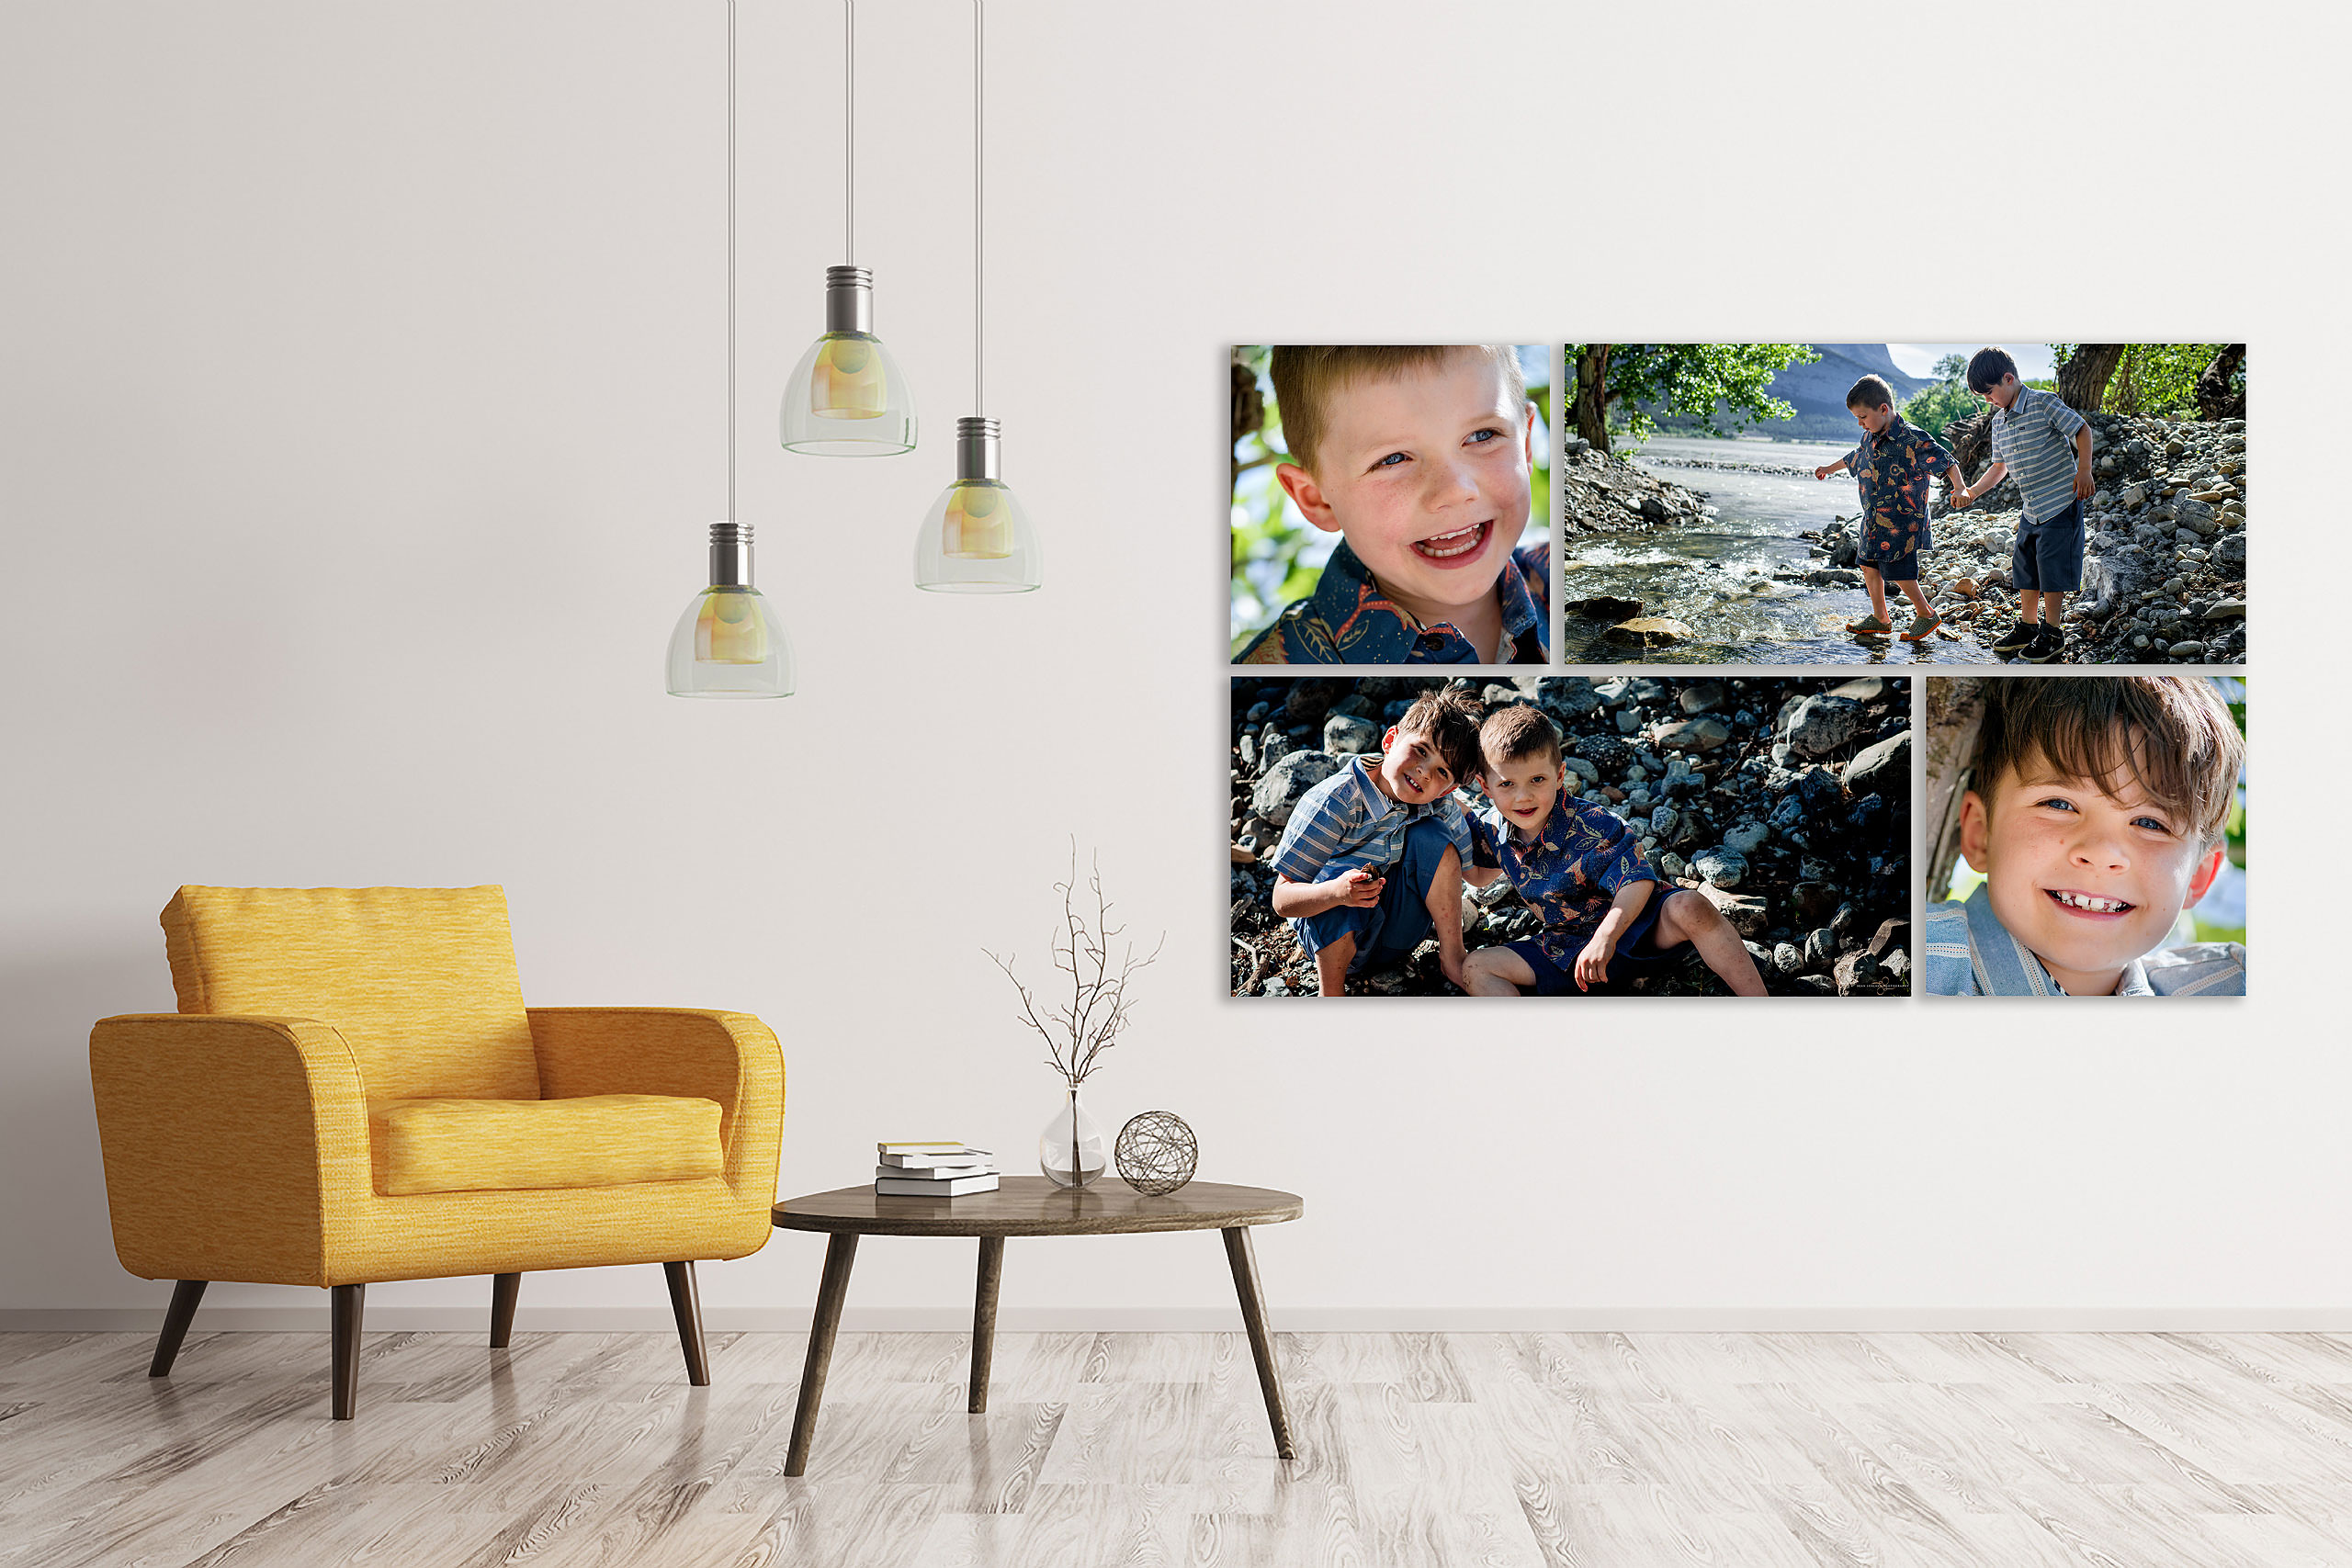 large wall art collection of two young boys by a river by top calgary portrait photographer sean leblanc